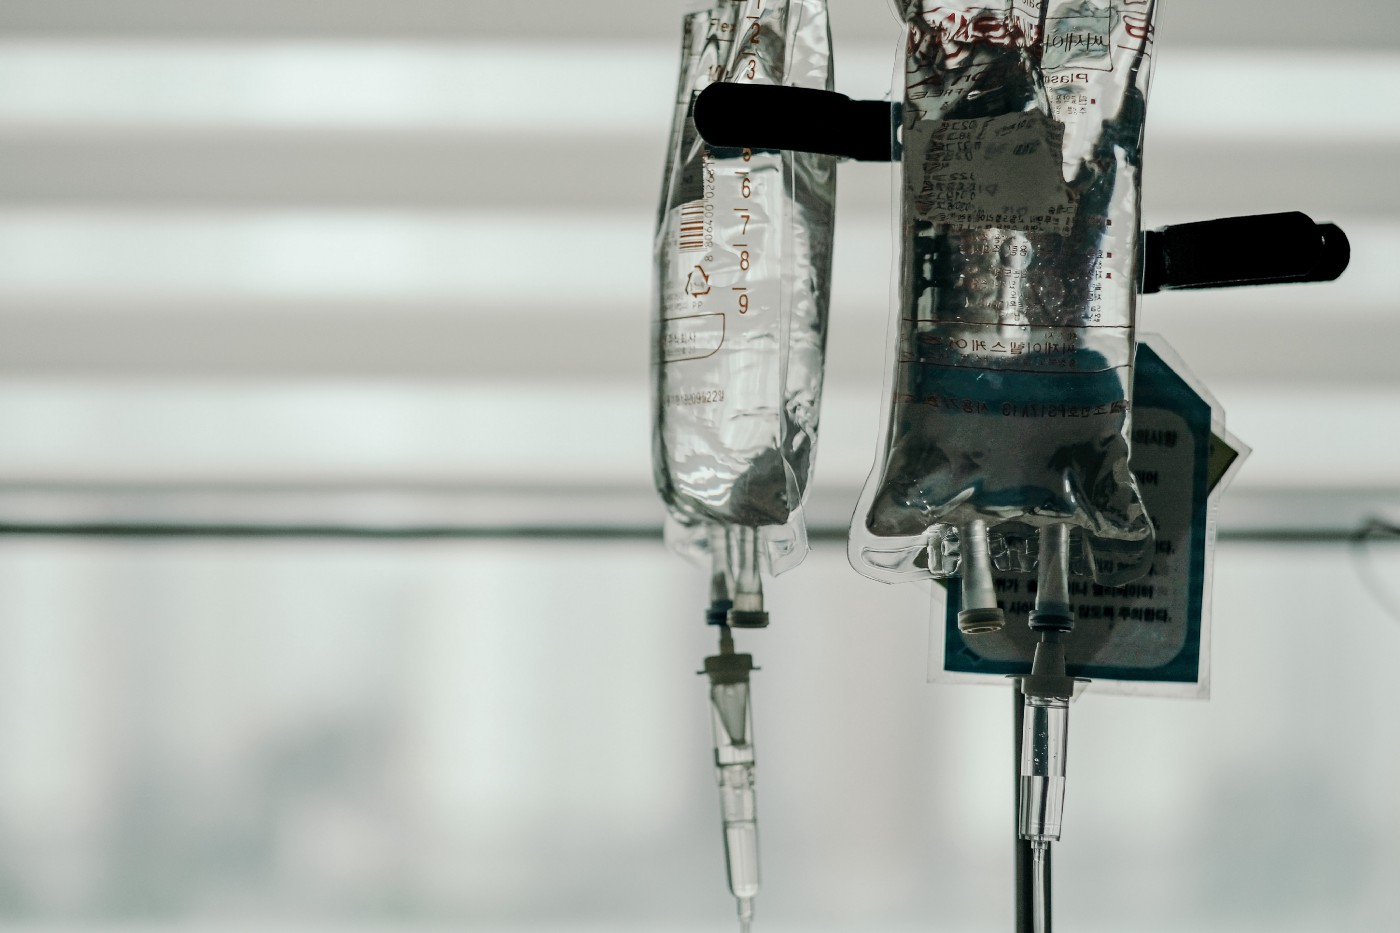 IVs hanging cropped in front of a mid-light window.